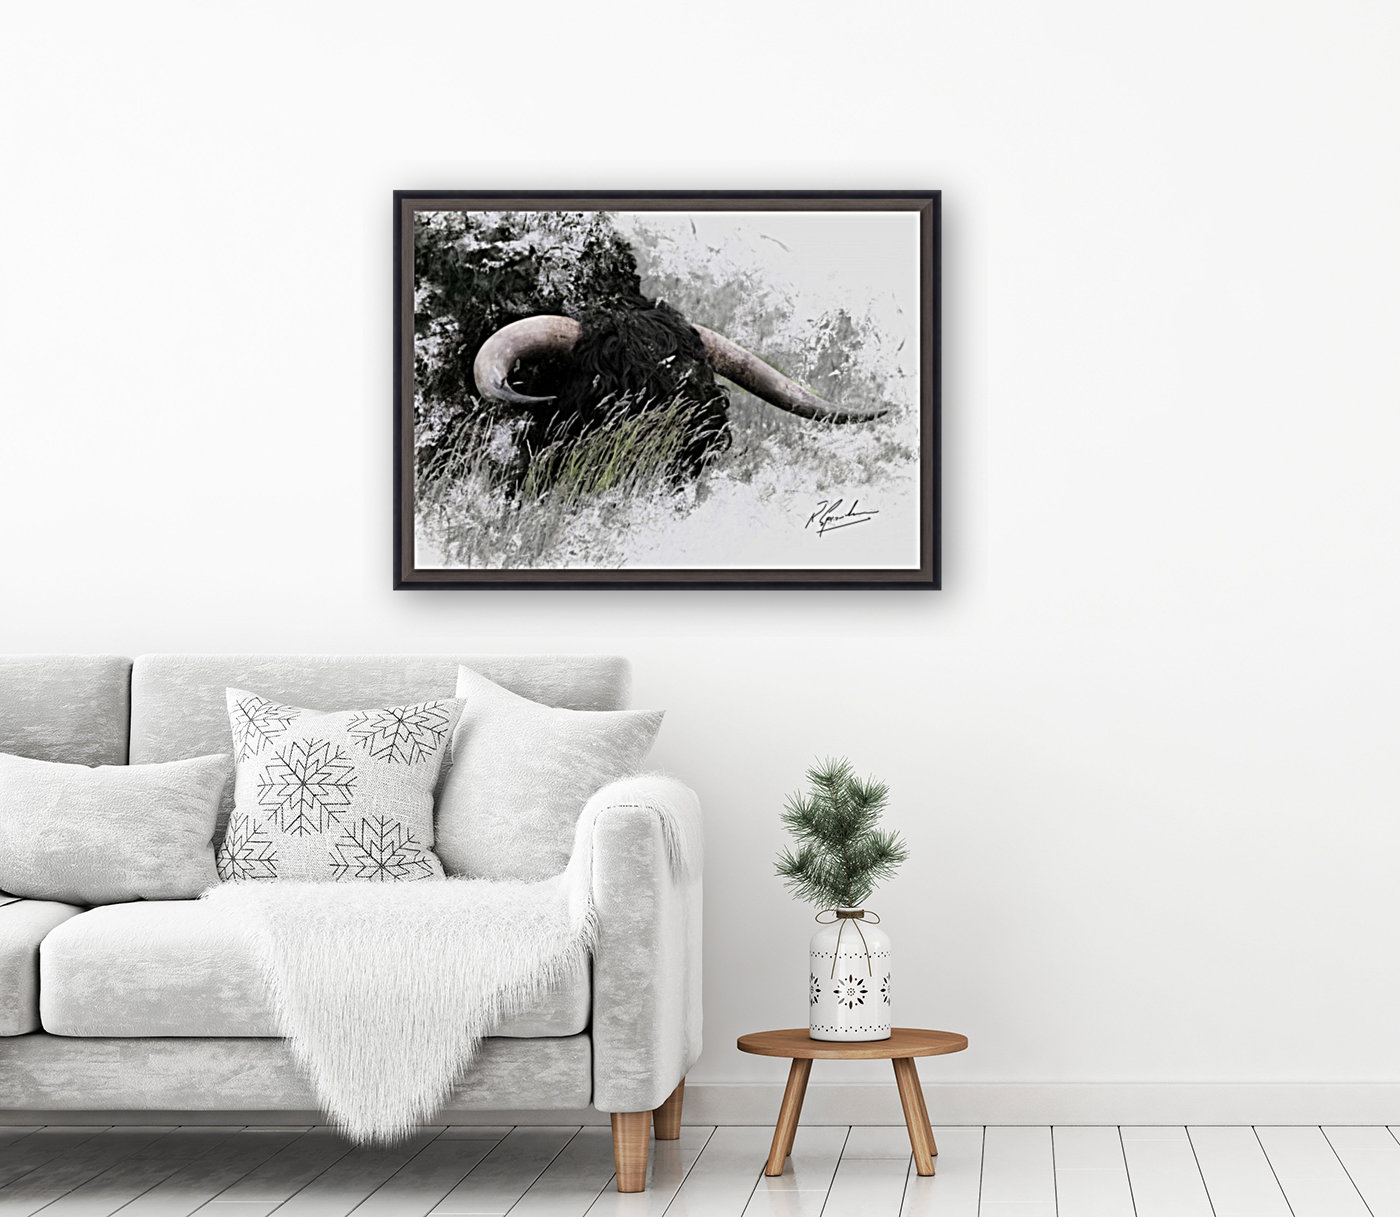 Bull in long grass with Floating Frame